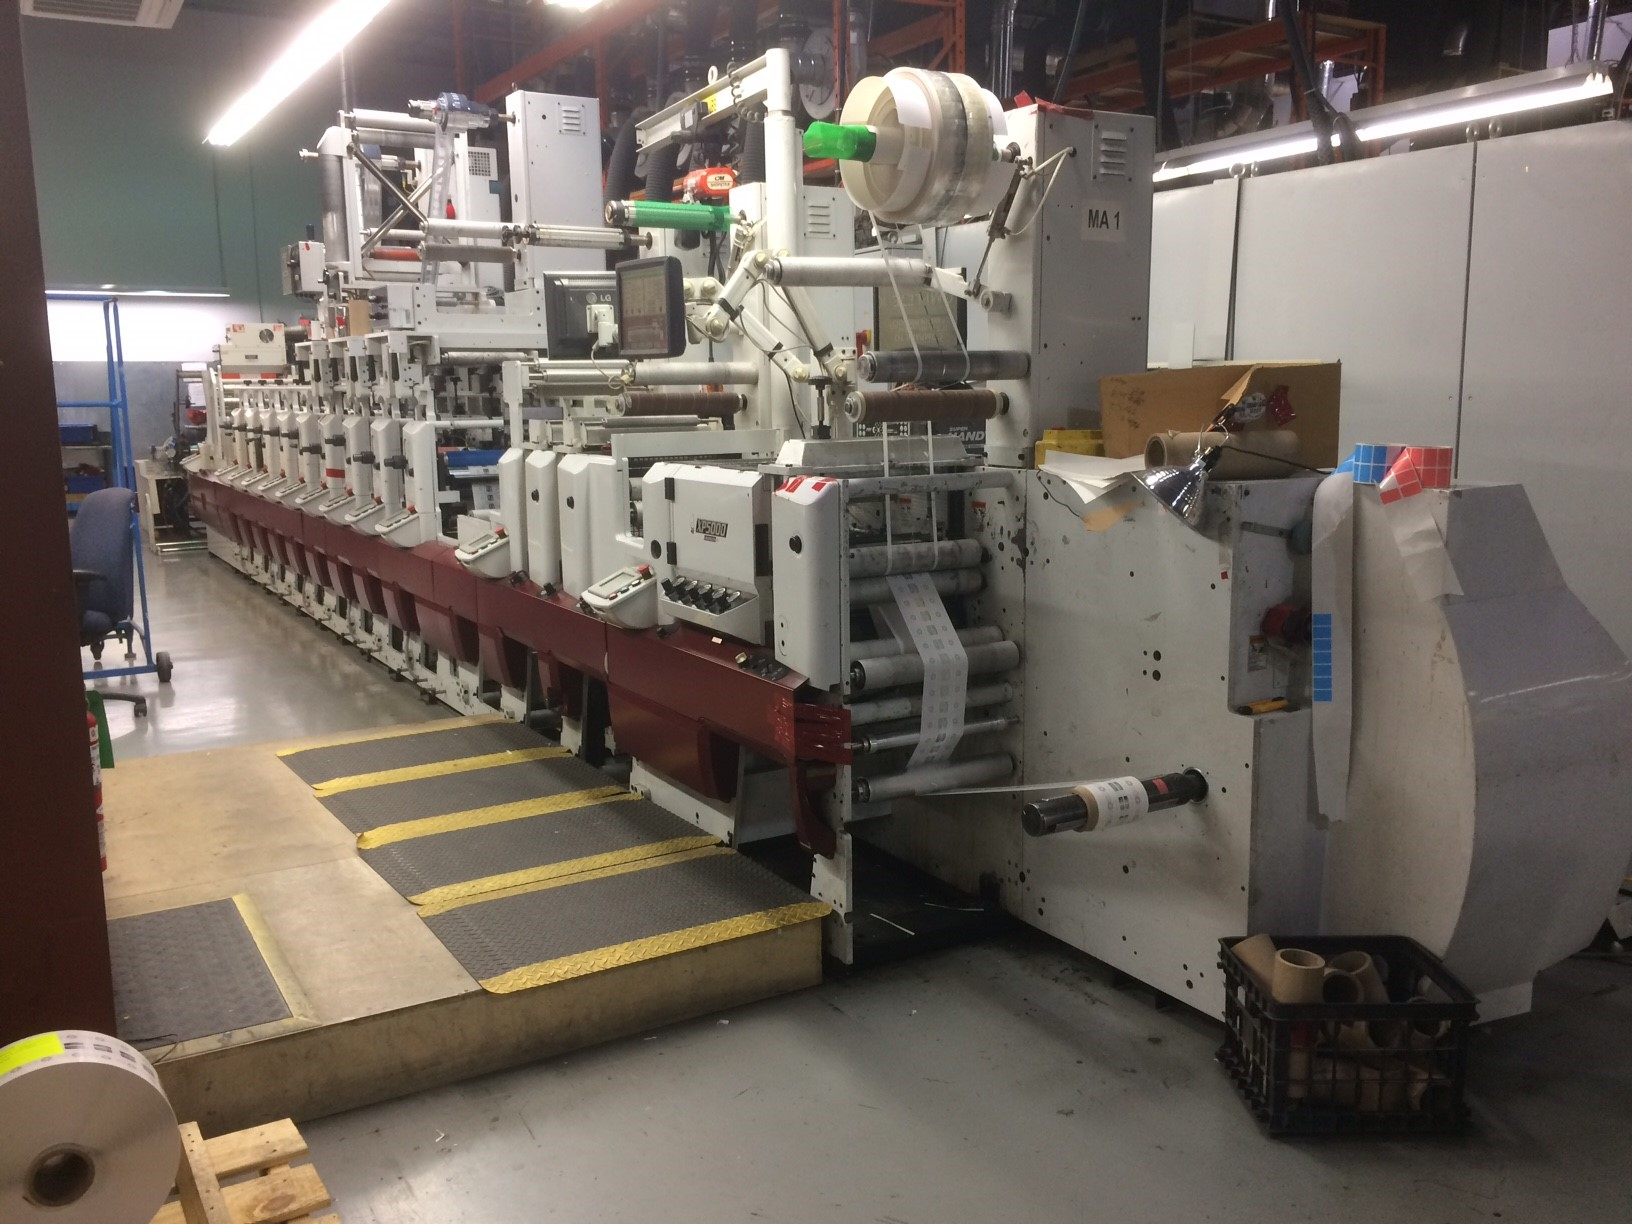 Mark Andy XP5000 - Used Flexo Printing Presses and Used Flexographic Equipment-10